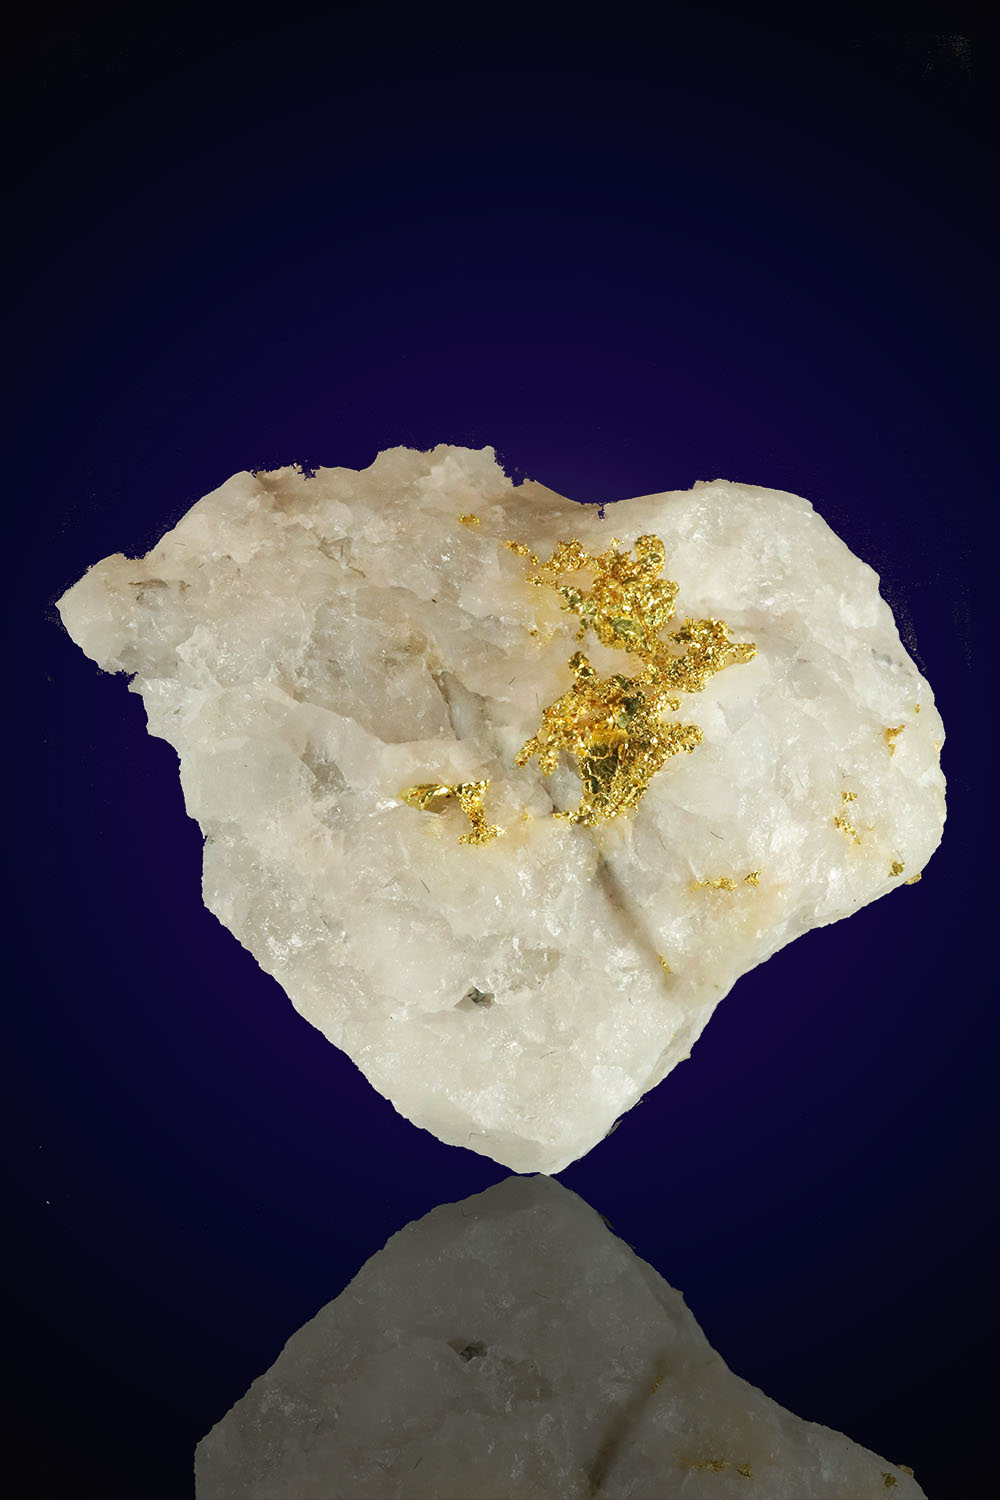 Eagles nest Gold in Quartz Gold Specimen